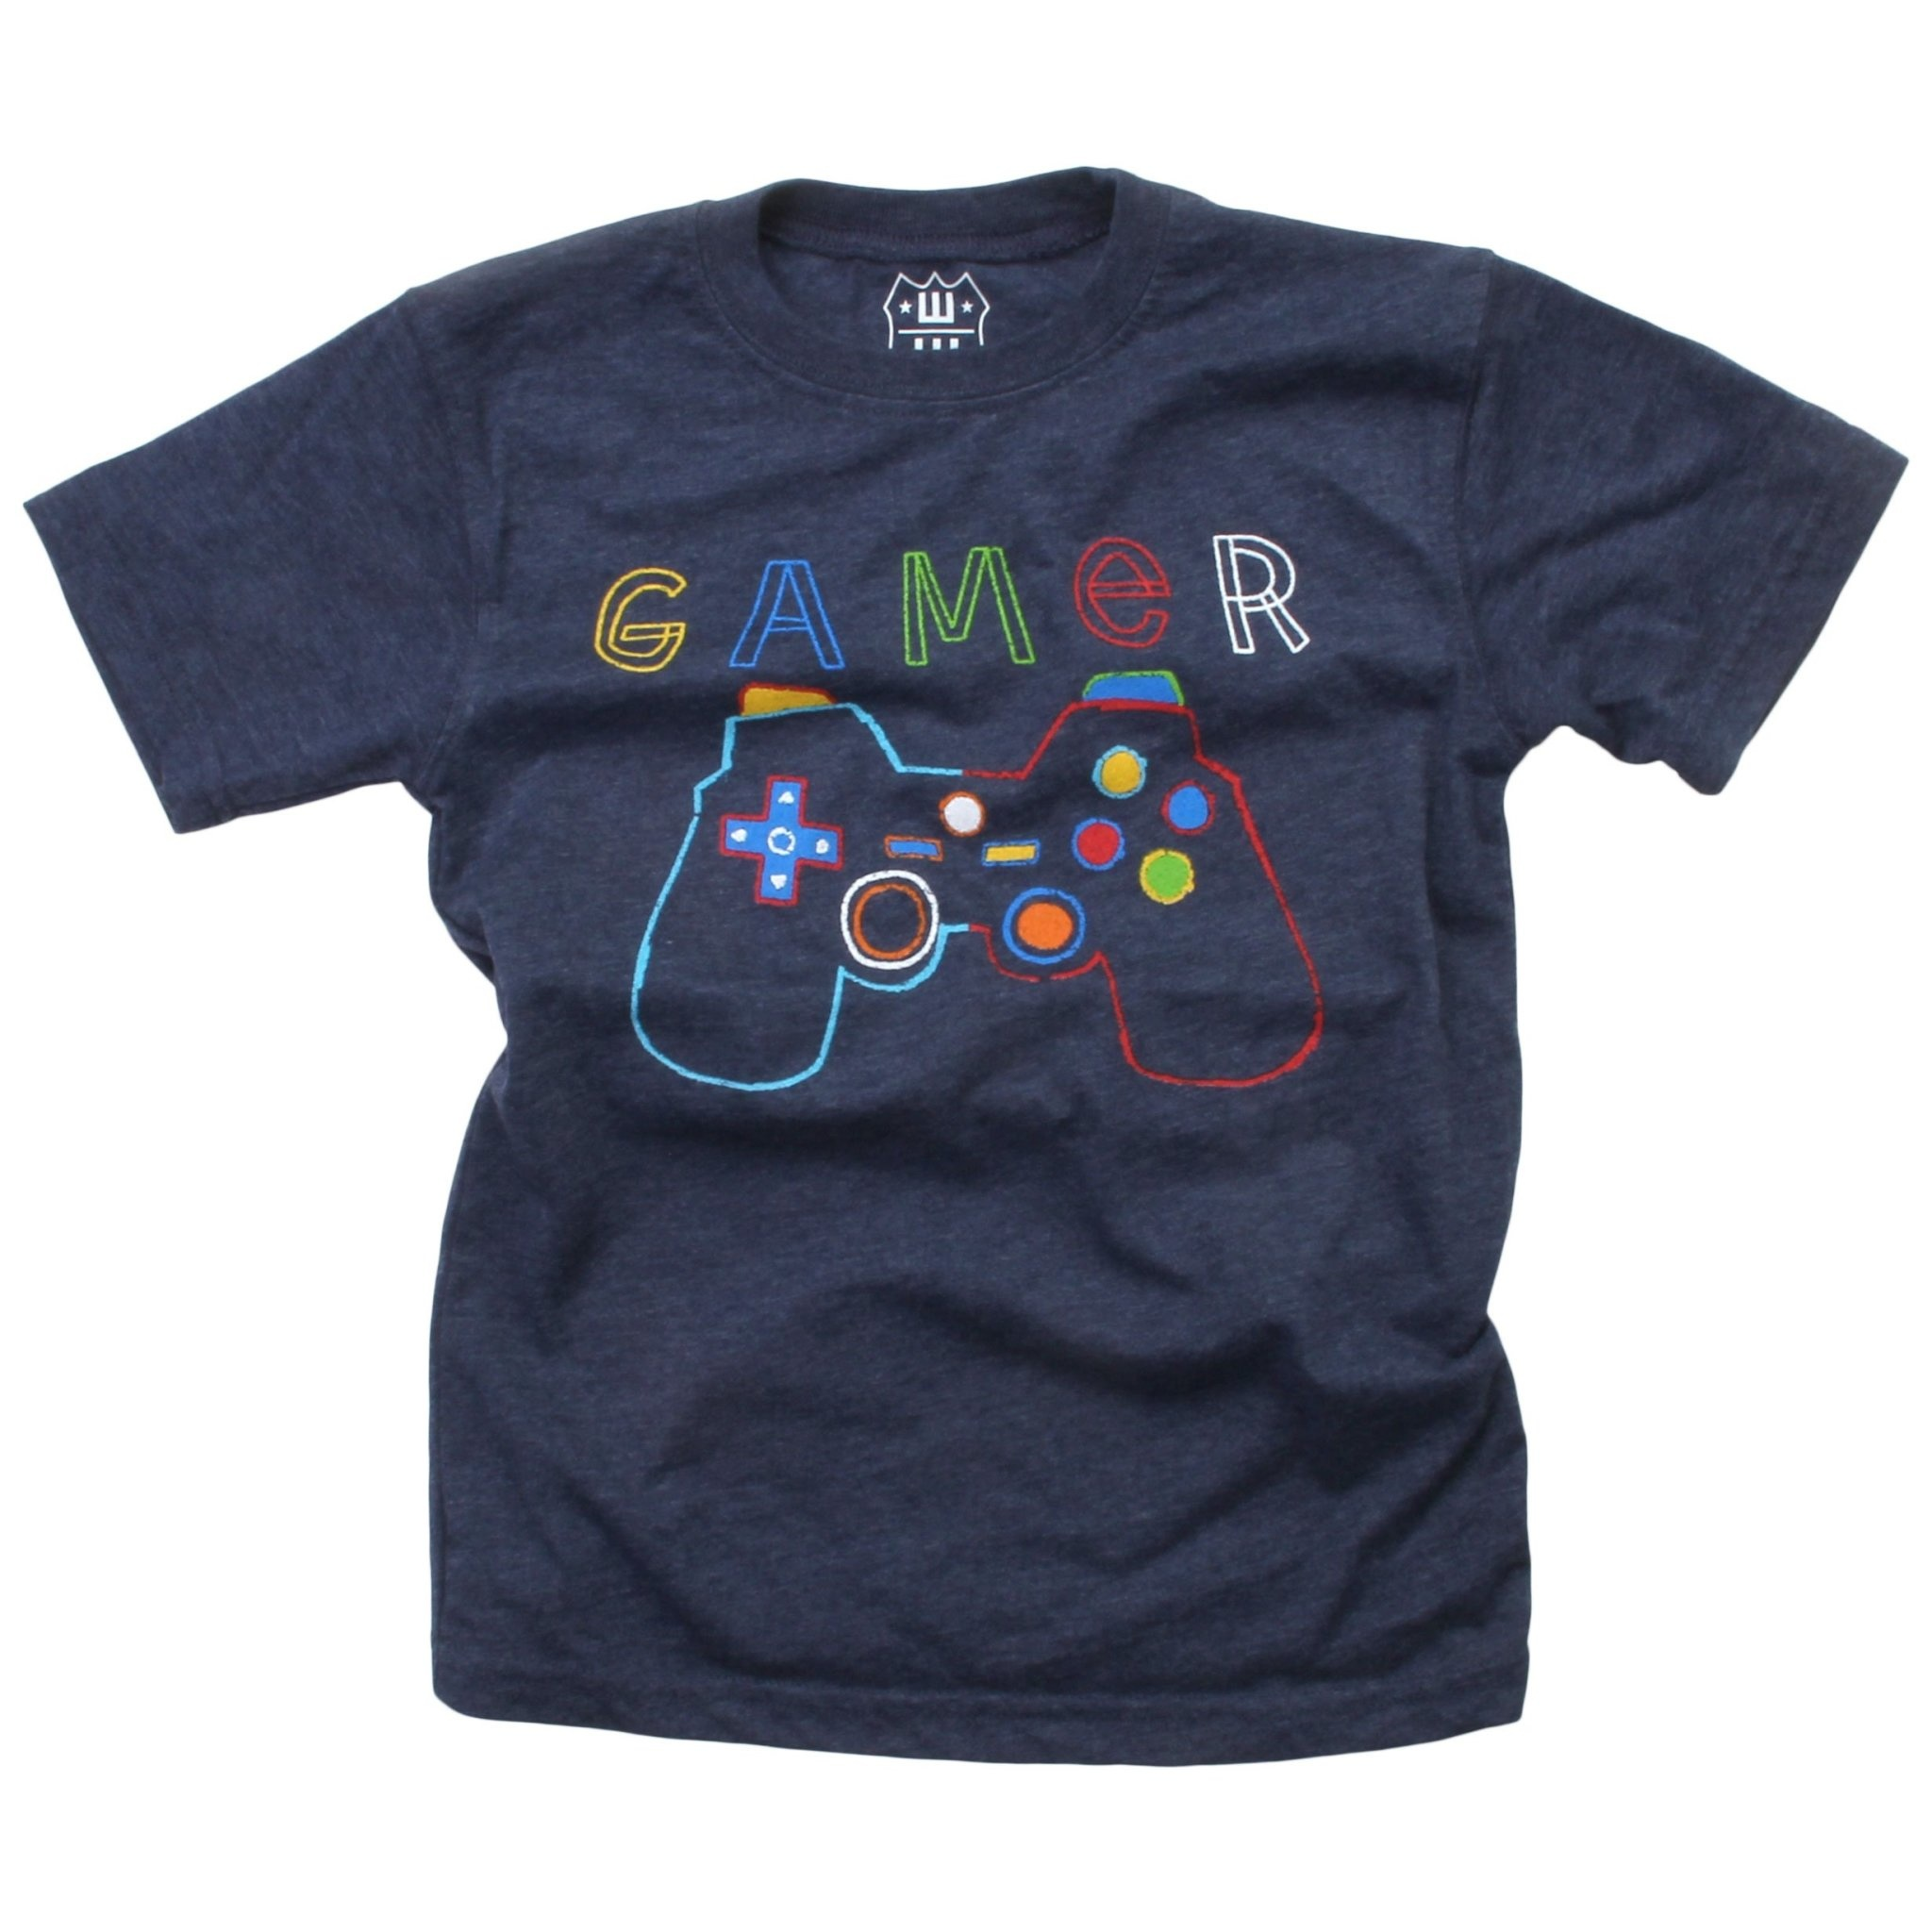 Wes and Willy Gamer Tee